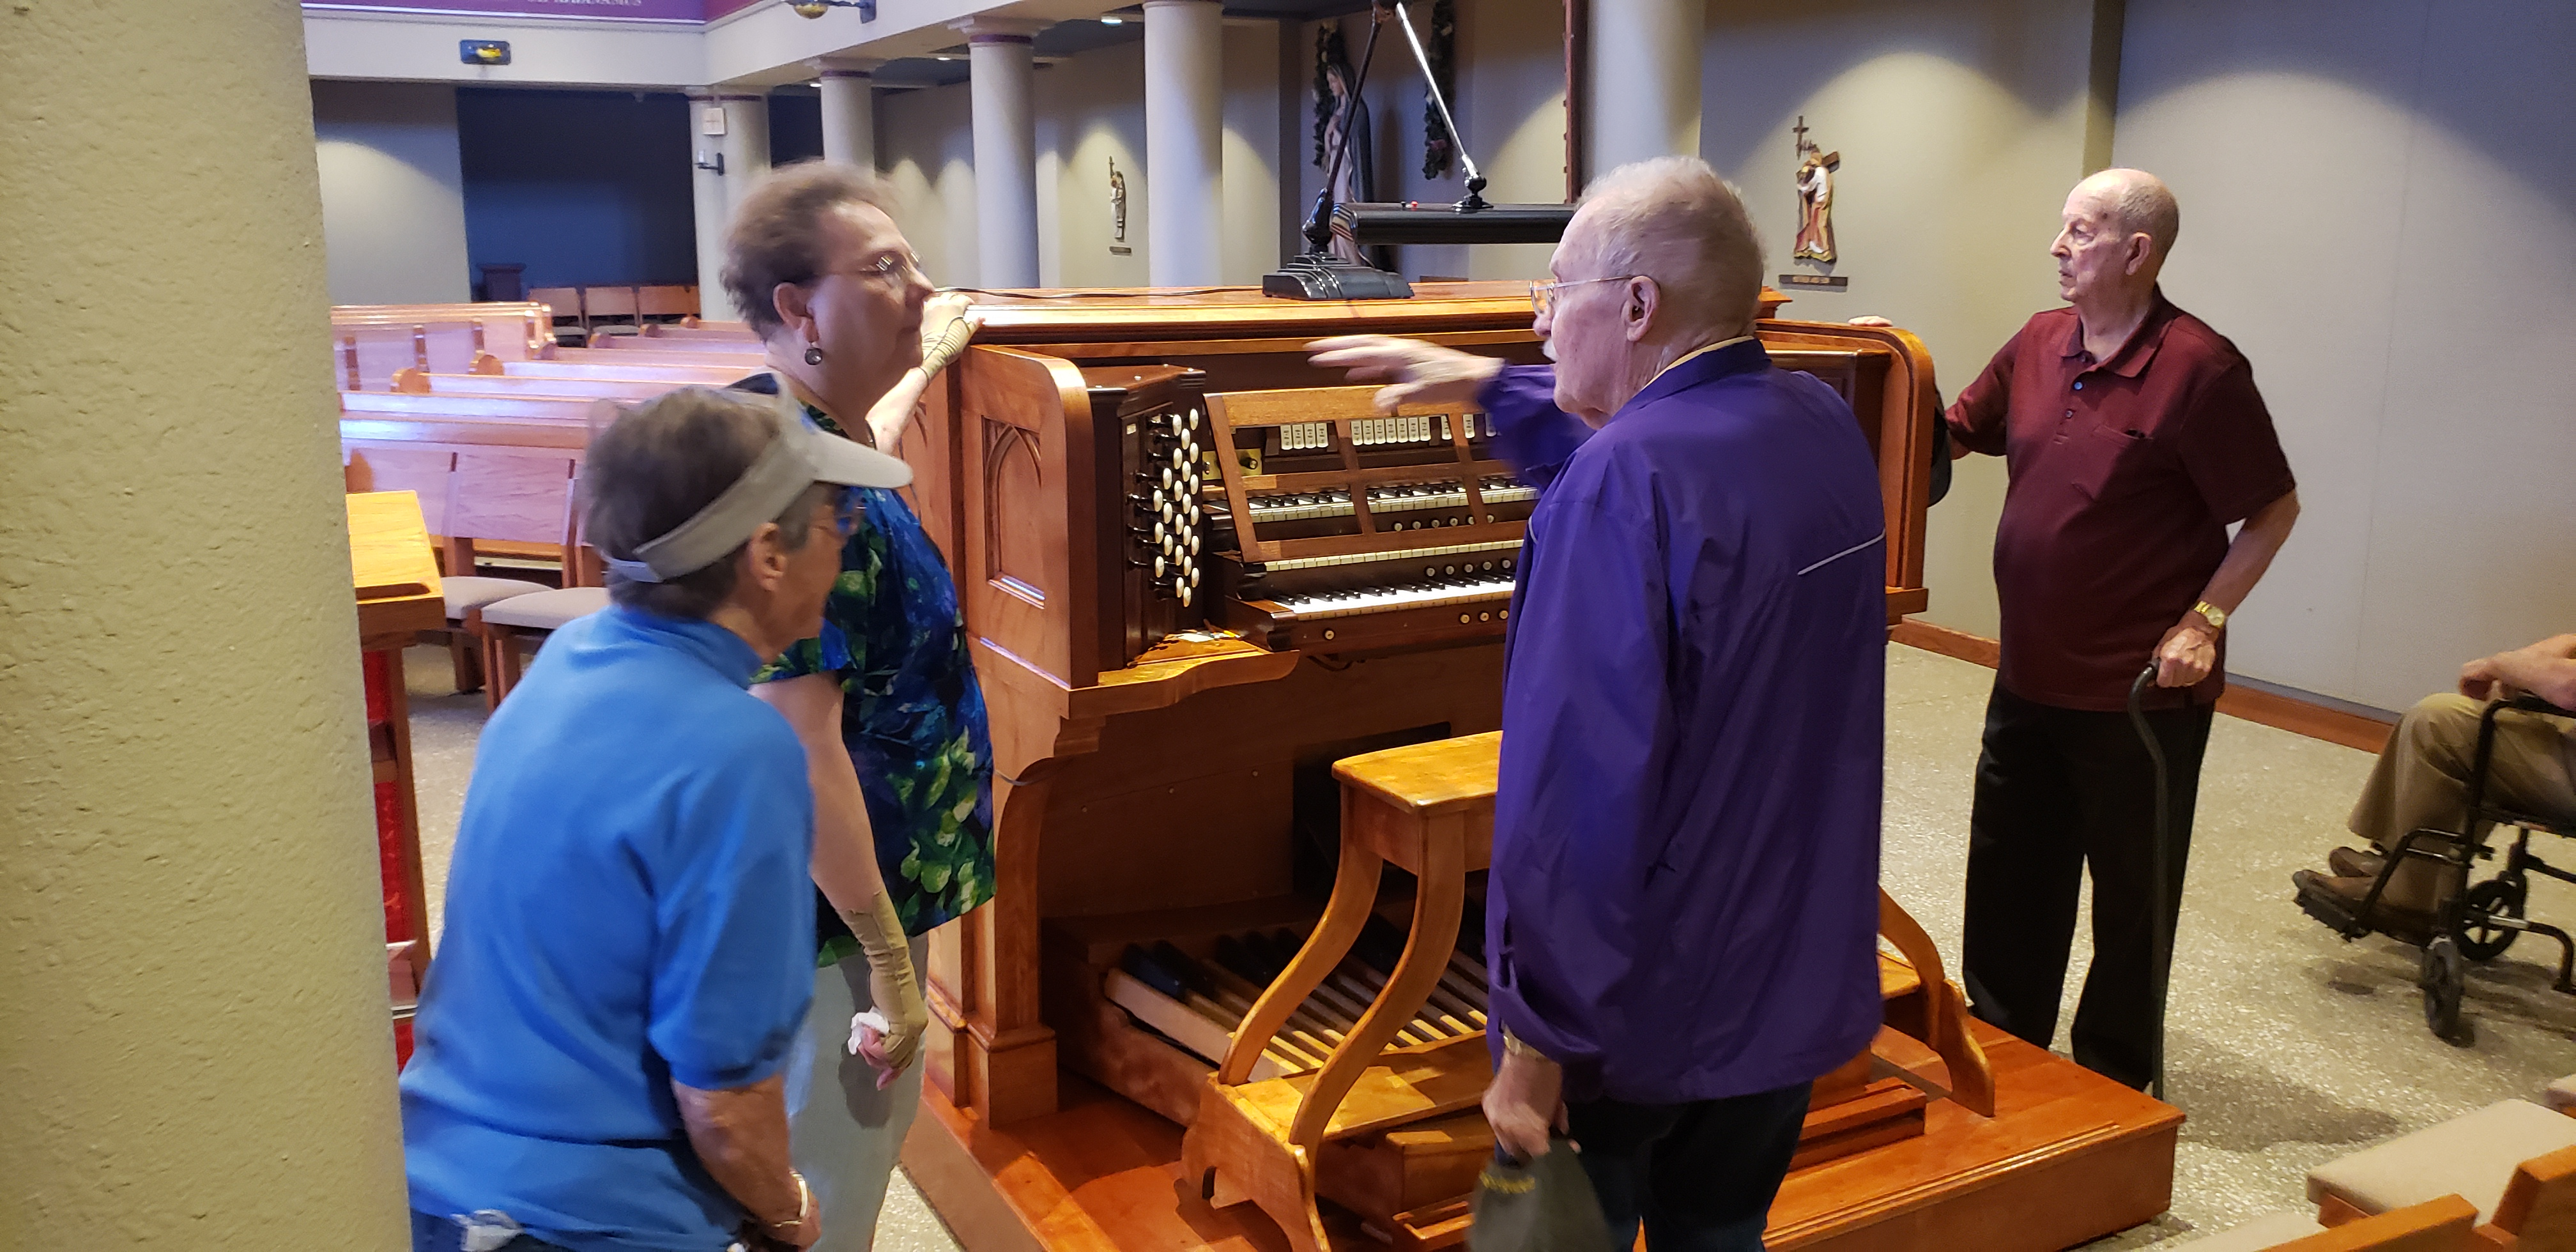 Beautiful organ crafted by our Bob!